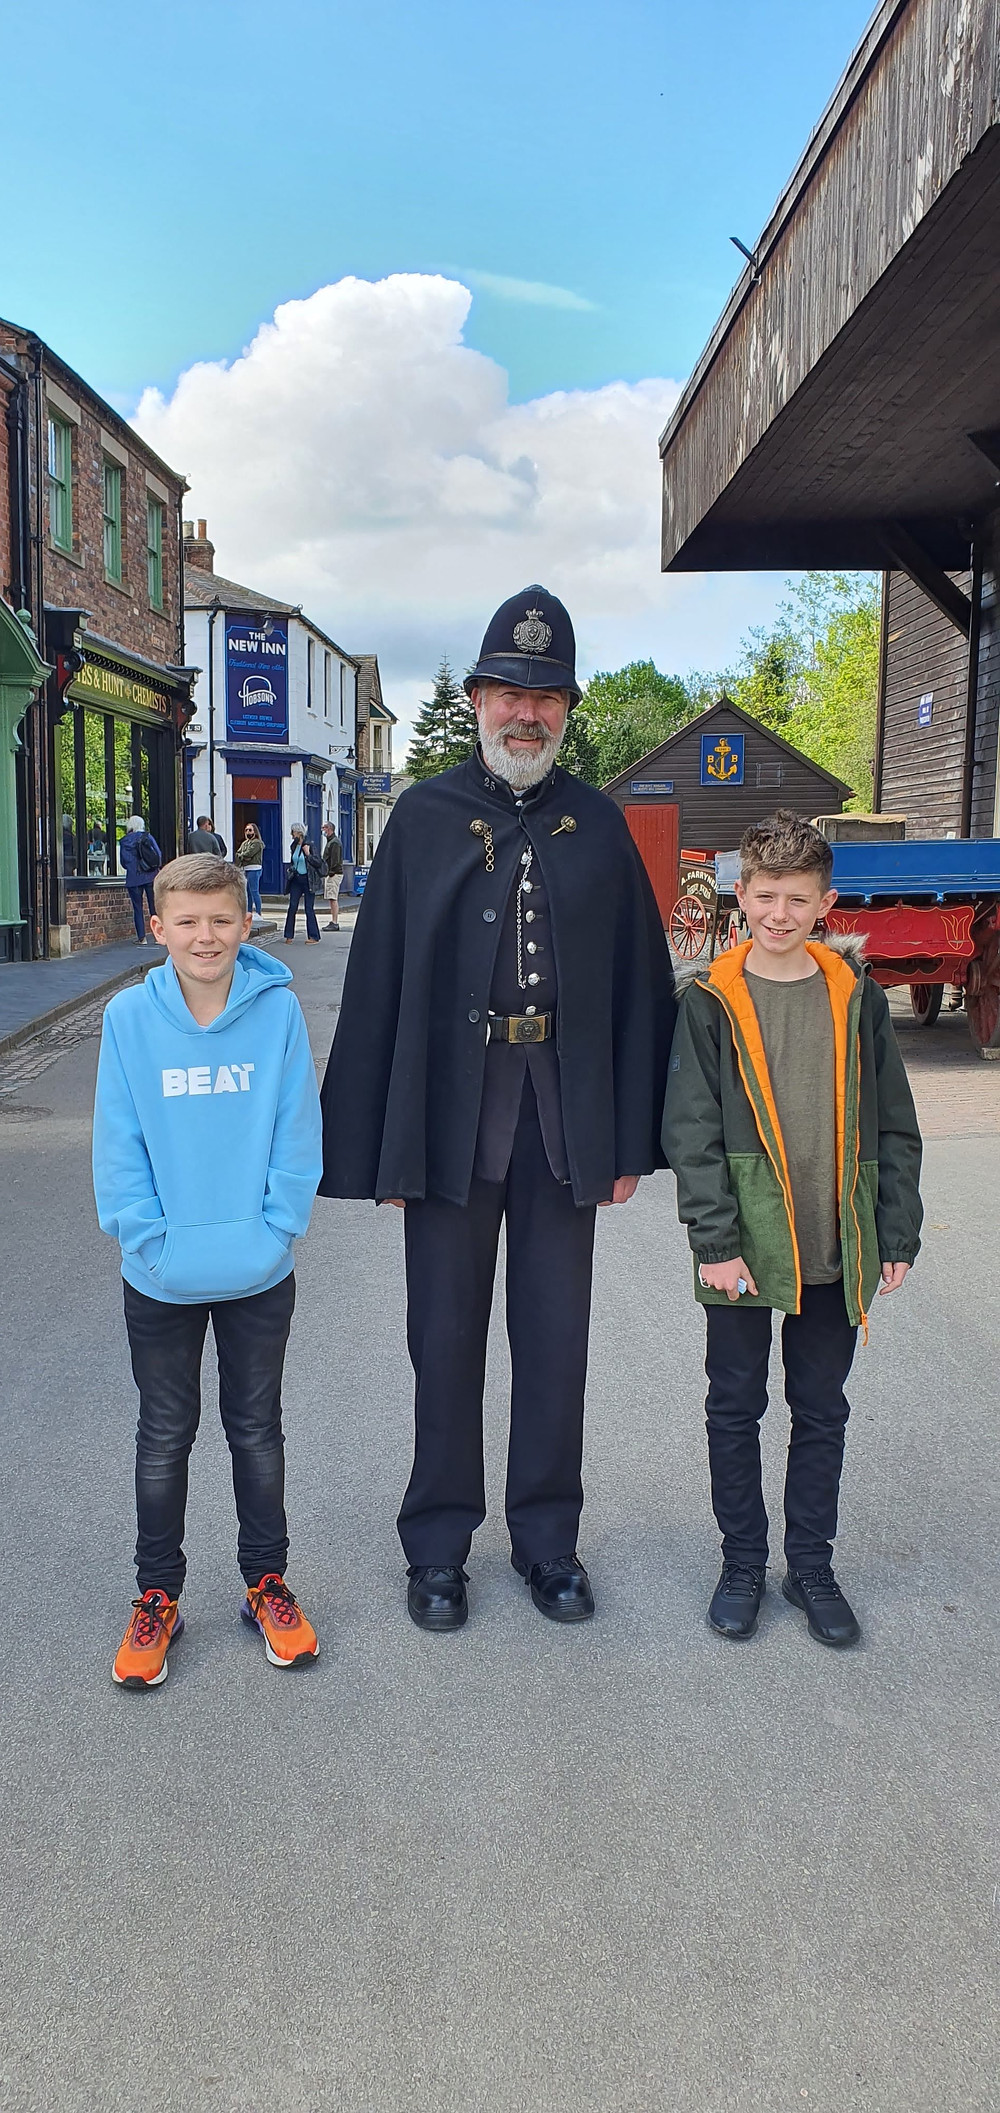 Lyall and Rich with Blists Hill's resident Police Officer Daddy & Dad Ironbridge Gorge Museums